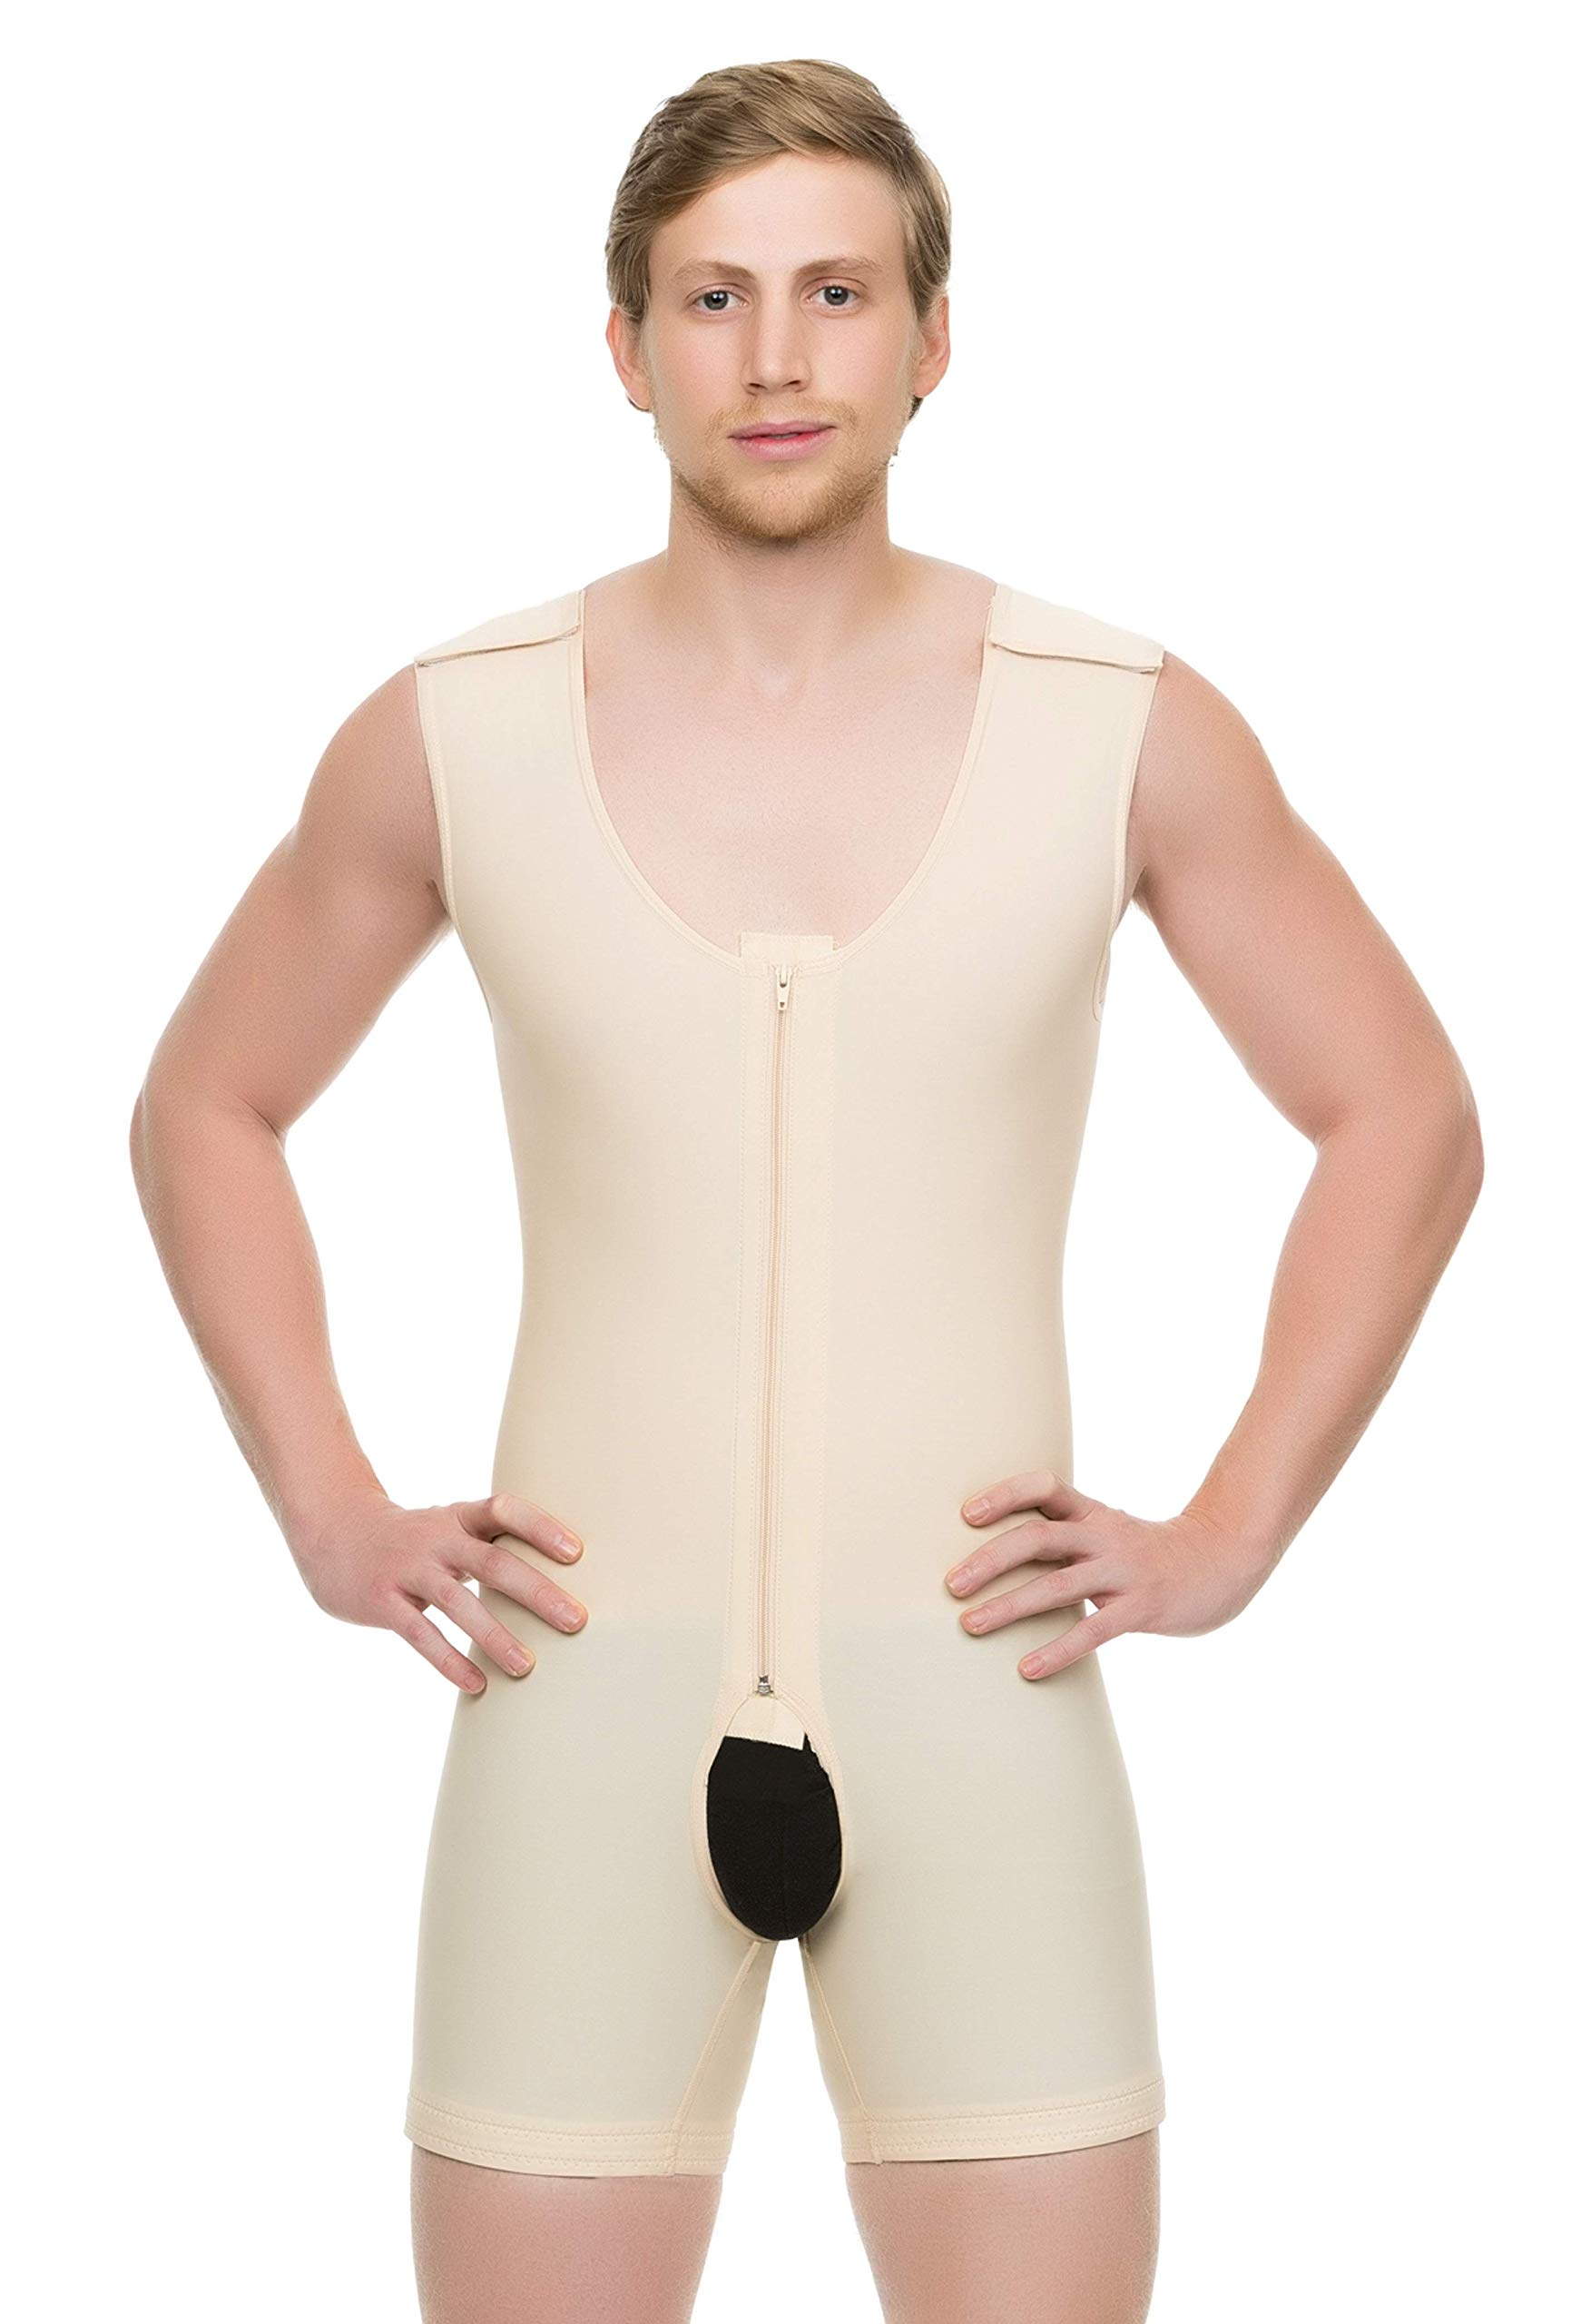 Isavela Male Full Body Mid Thigh Length Abdominal Cosmetic Surgery Compression Garment W/Zipper (Sleeveless) (MG02) (3XL, Beige)